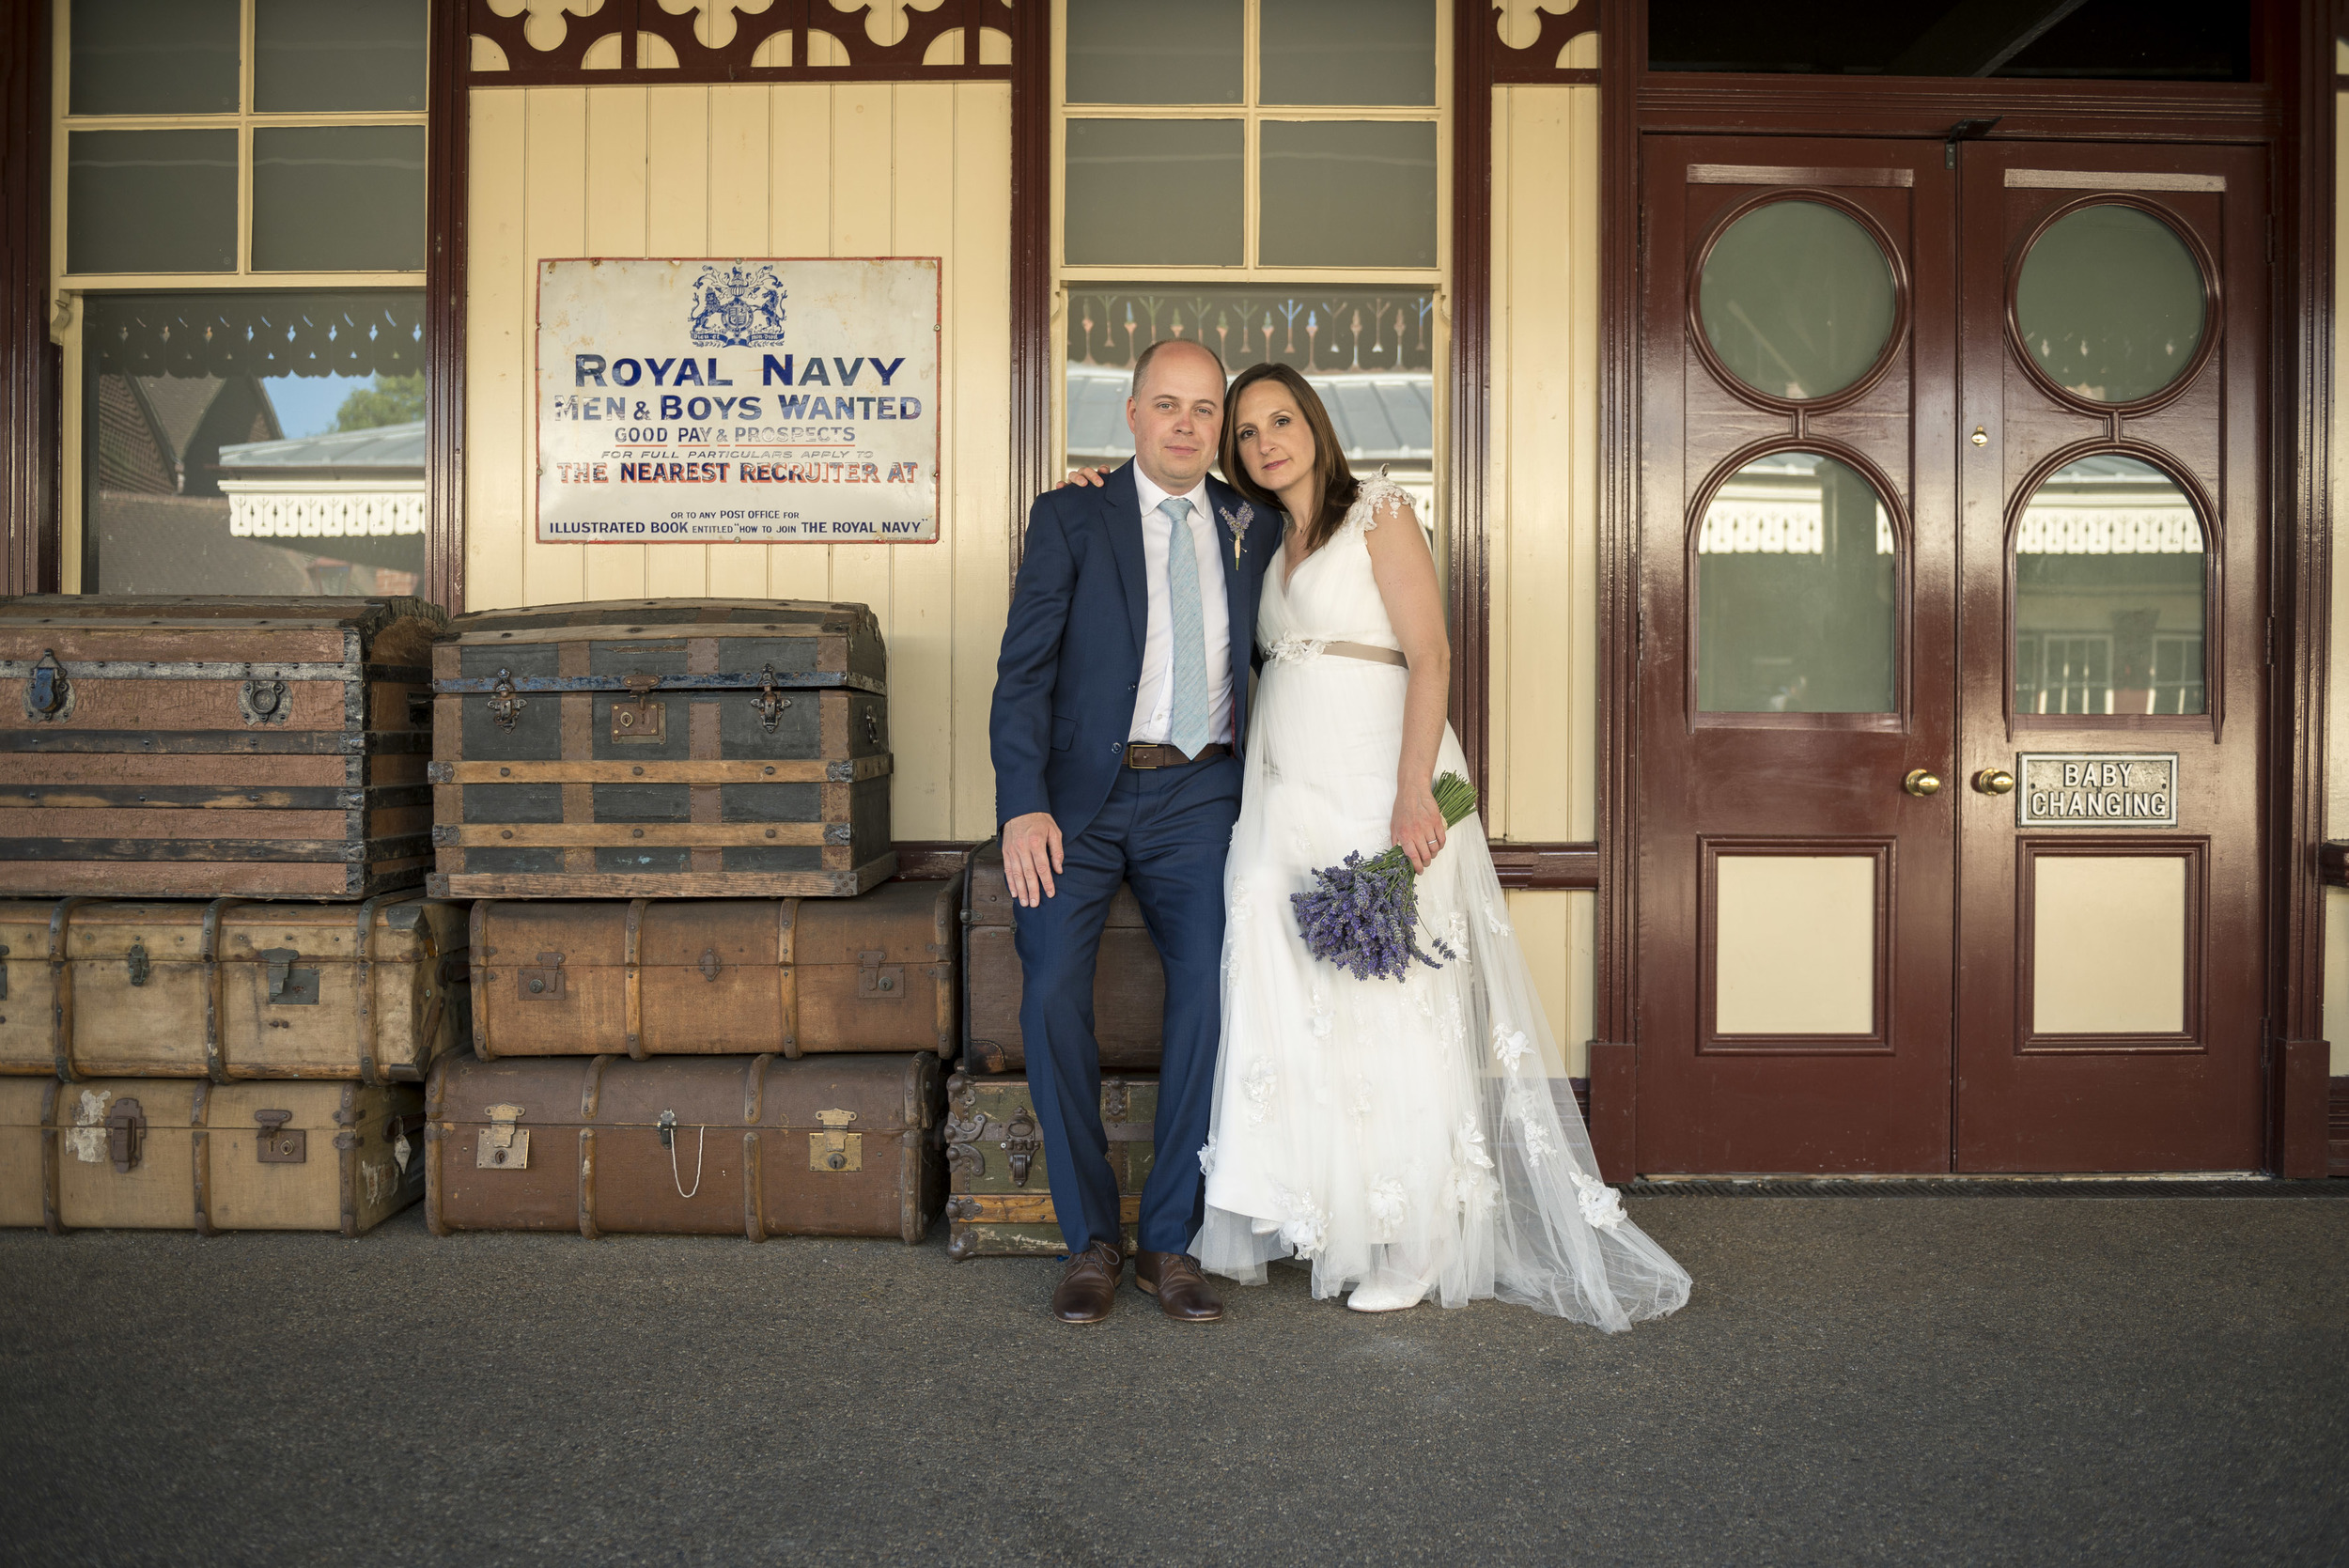 bluebell_railway_wedding-5.jpg